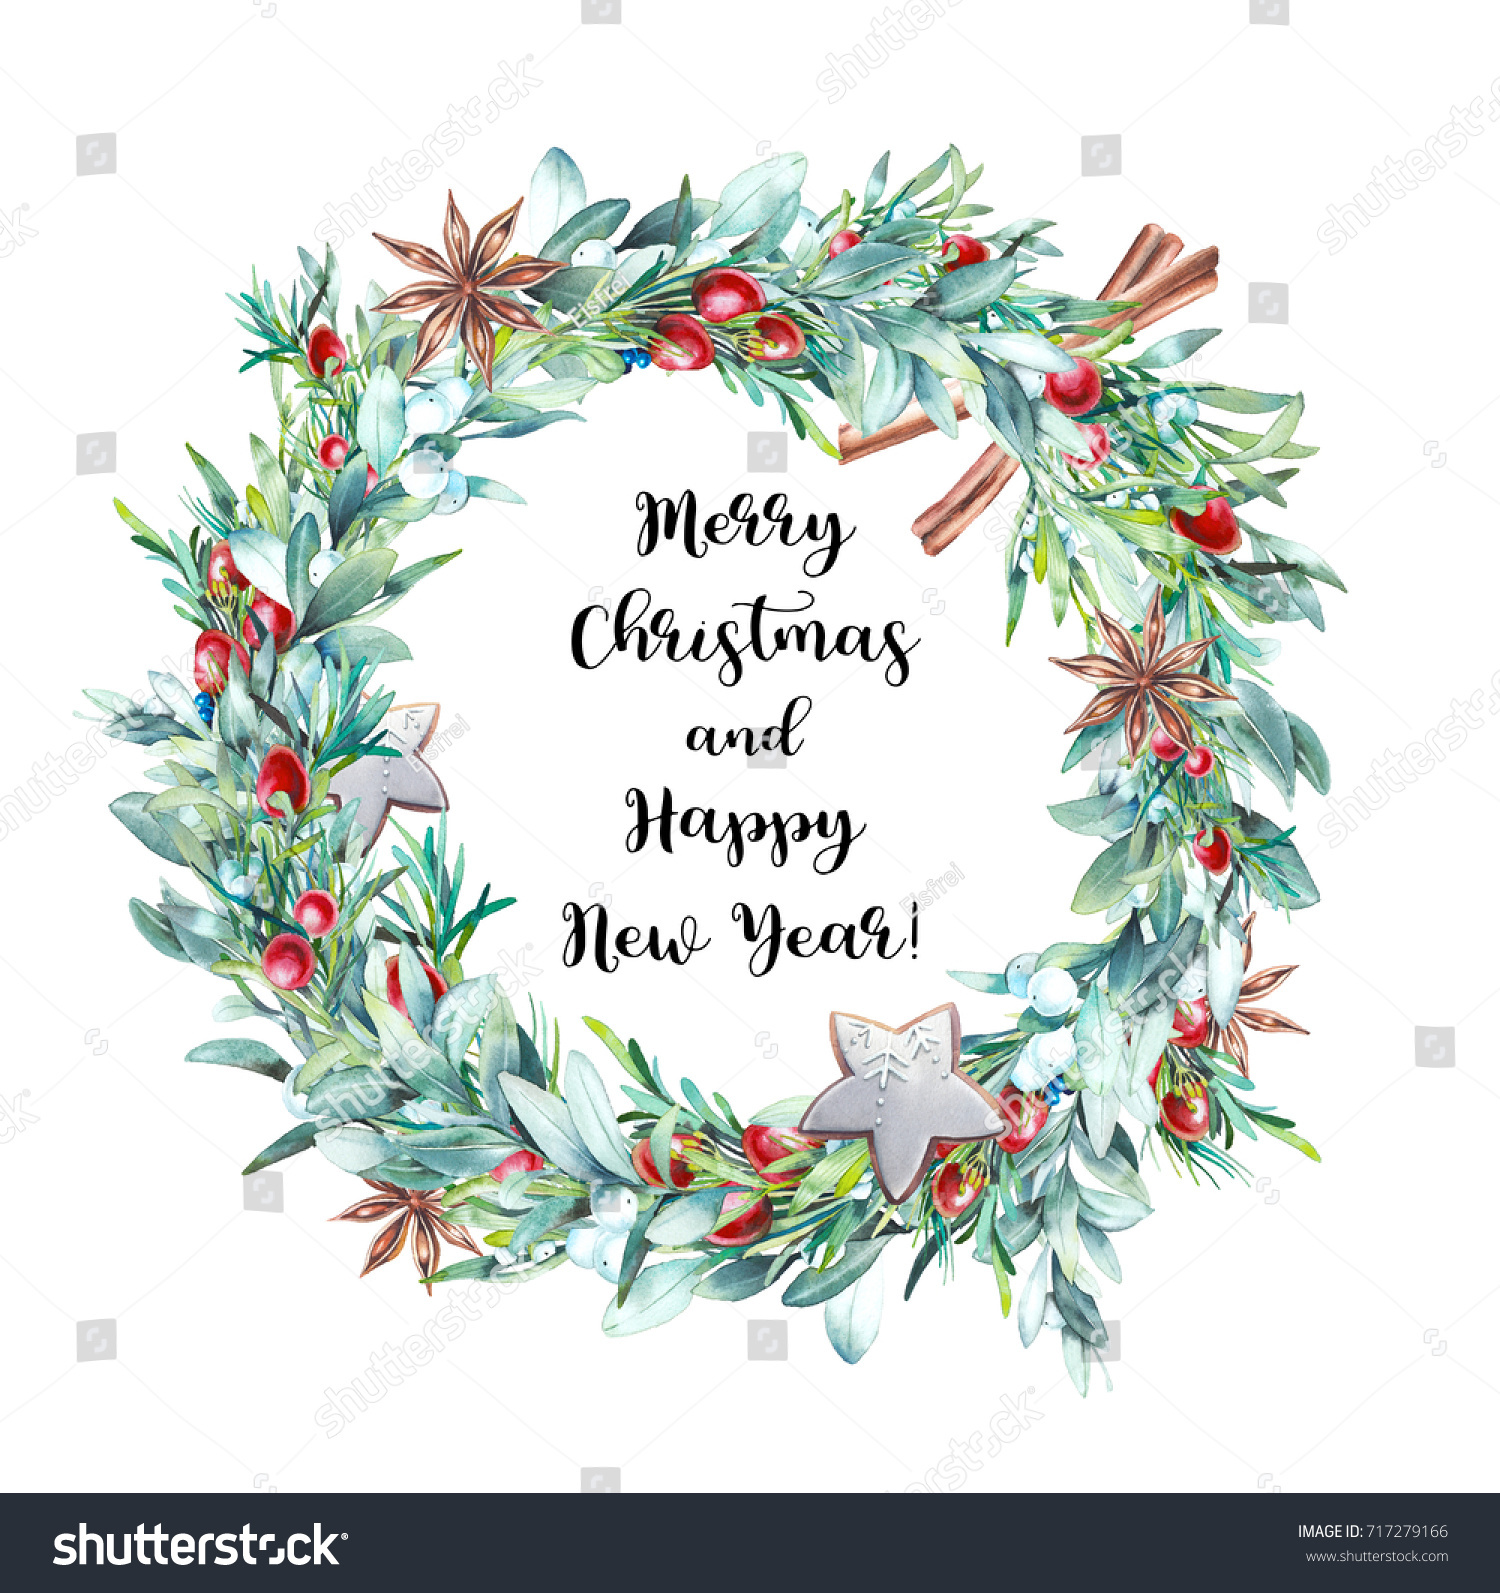 Merry Christmas Happy New Year Card Stock Illustration 717279166 ...